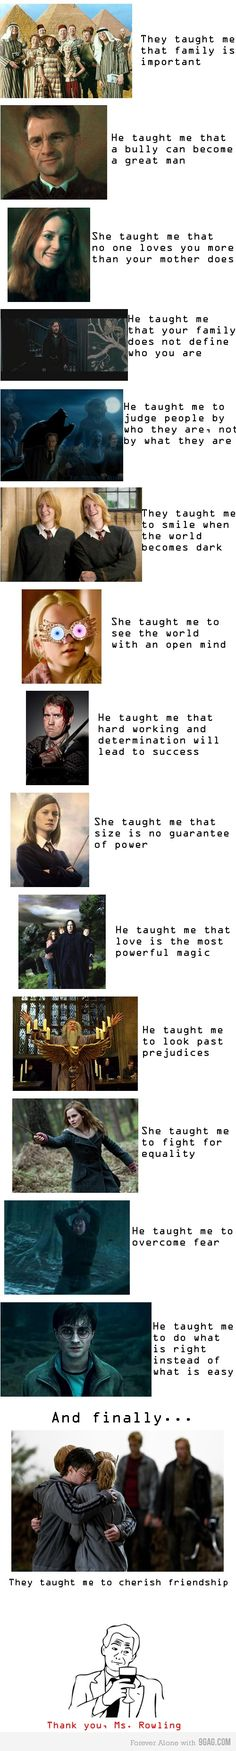 Harry Potter lessons. Love this!